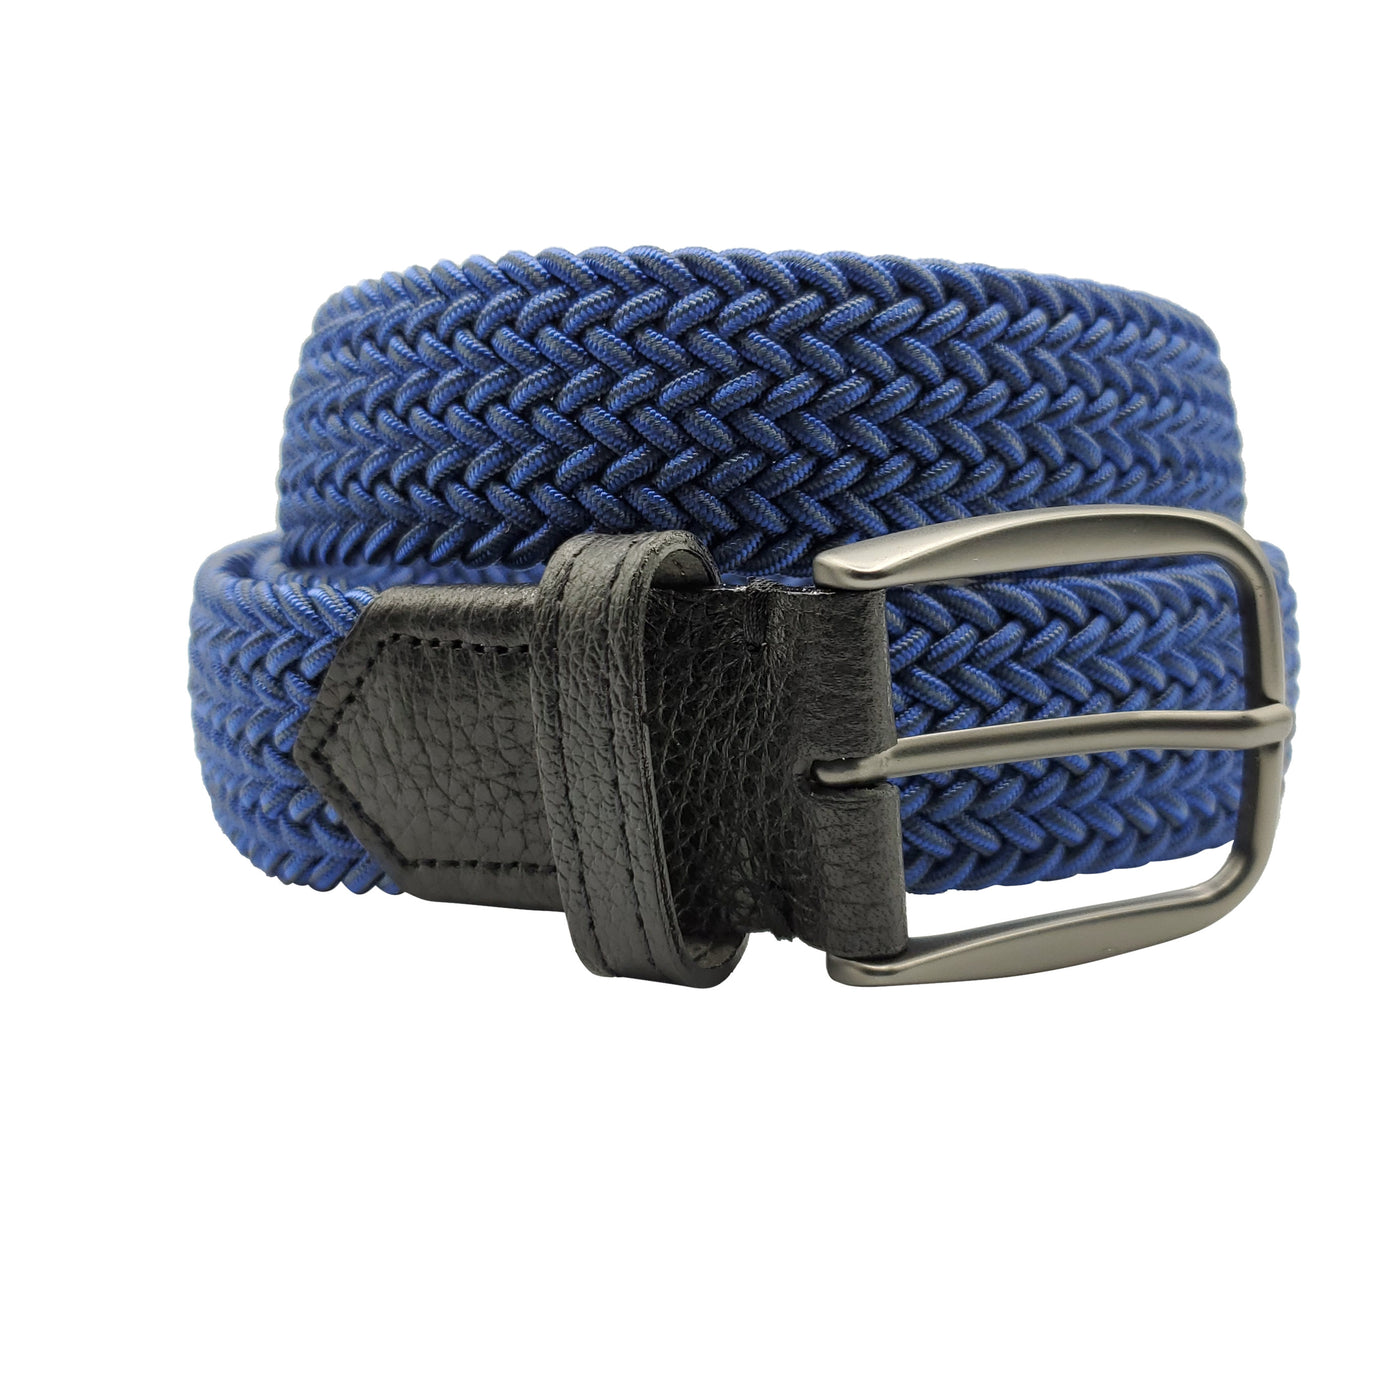 Royal Blue Grey Elastic Stretch Belt